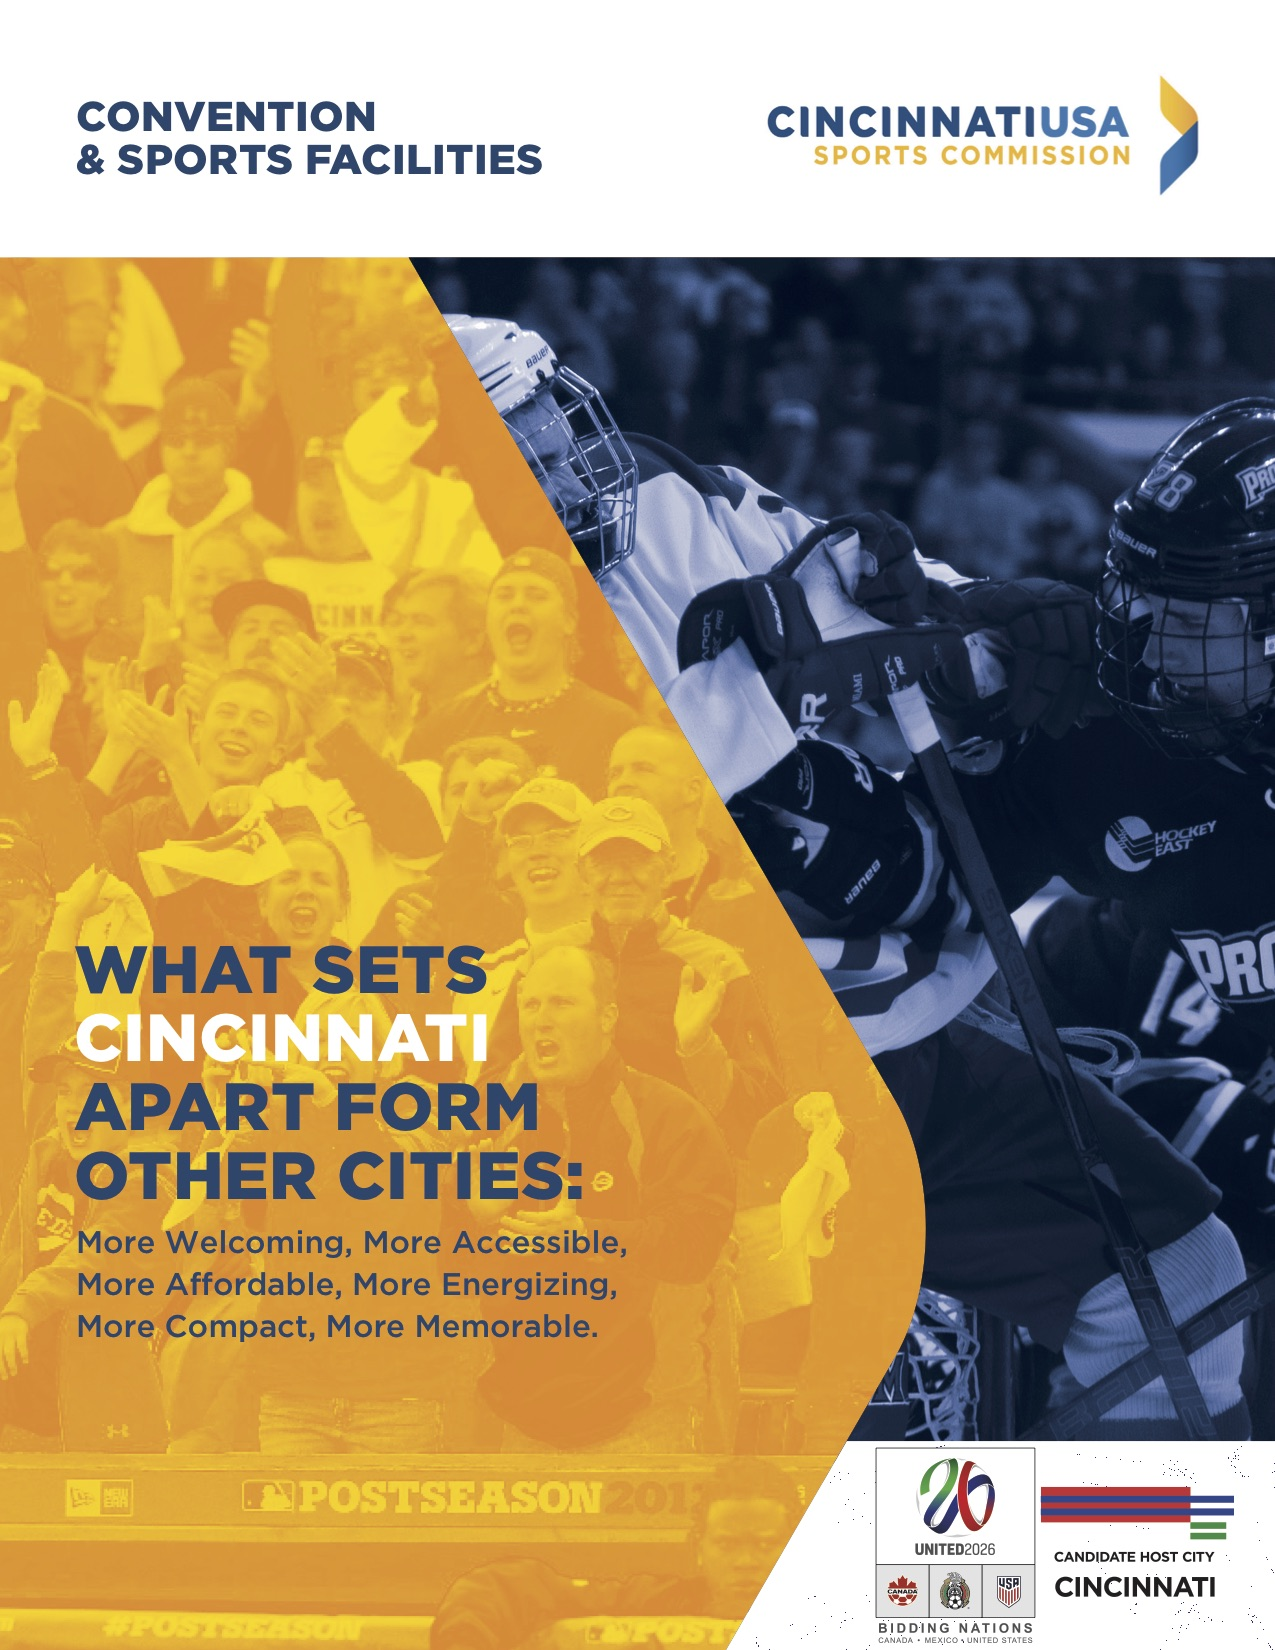 CUSC sports venue brochure 2018Cover.jpg